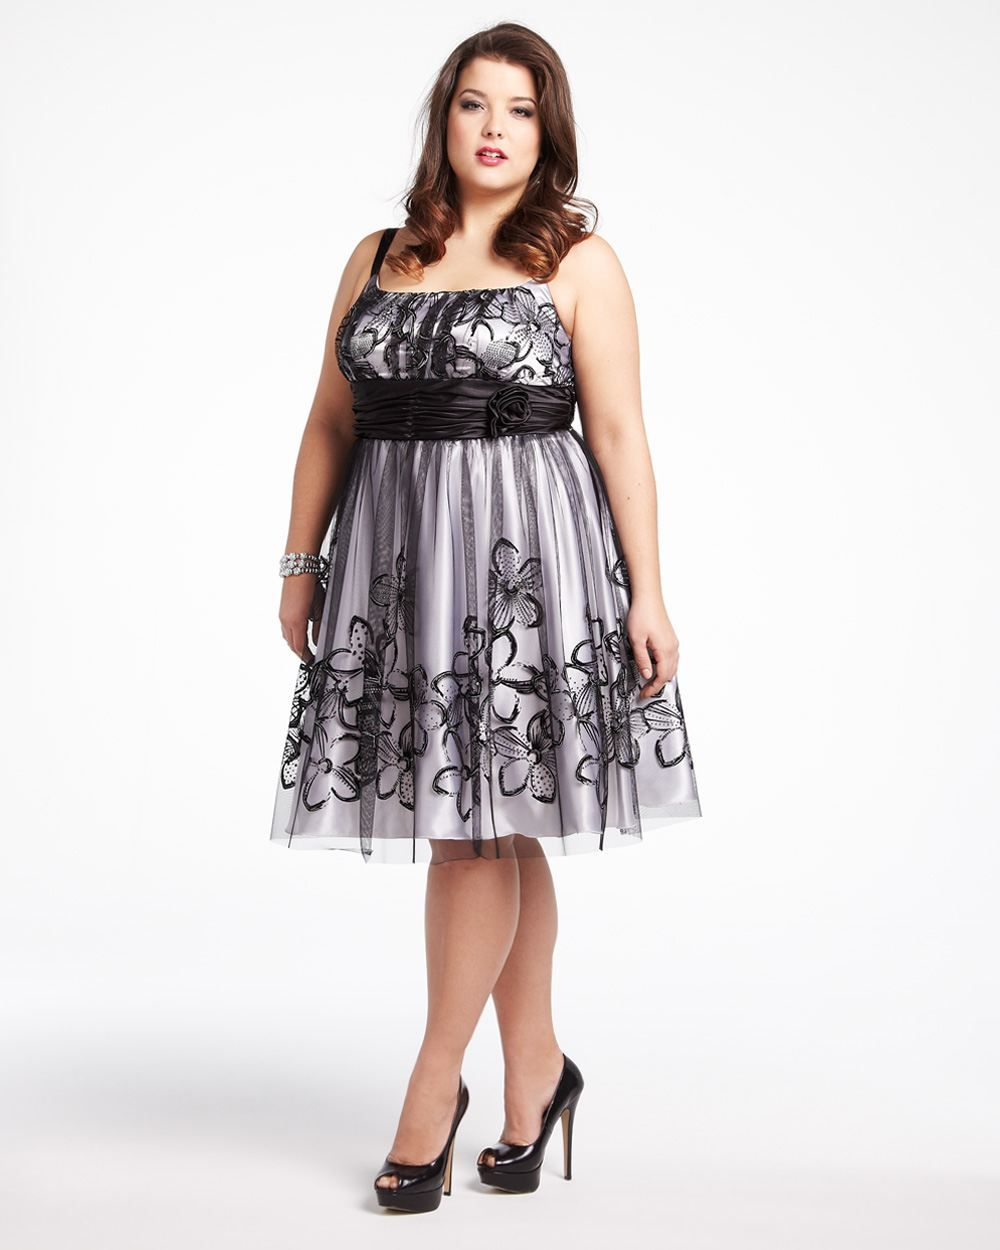 708ecd67c5 This Plus Size crinoline dress in Black For Women features a waist defining  sash waistband and adjustable spaghetti straps. Description from dawoob.com.